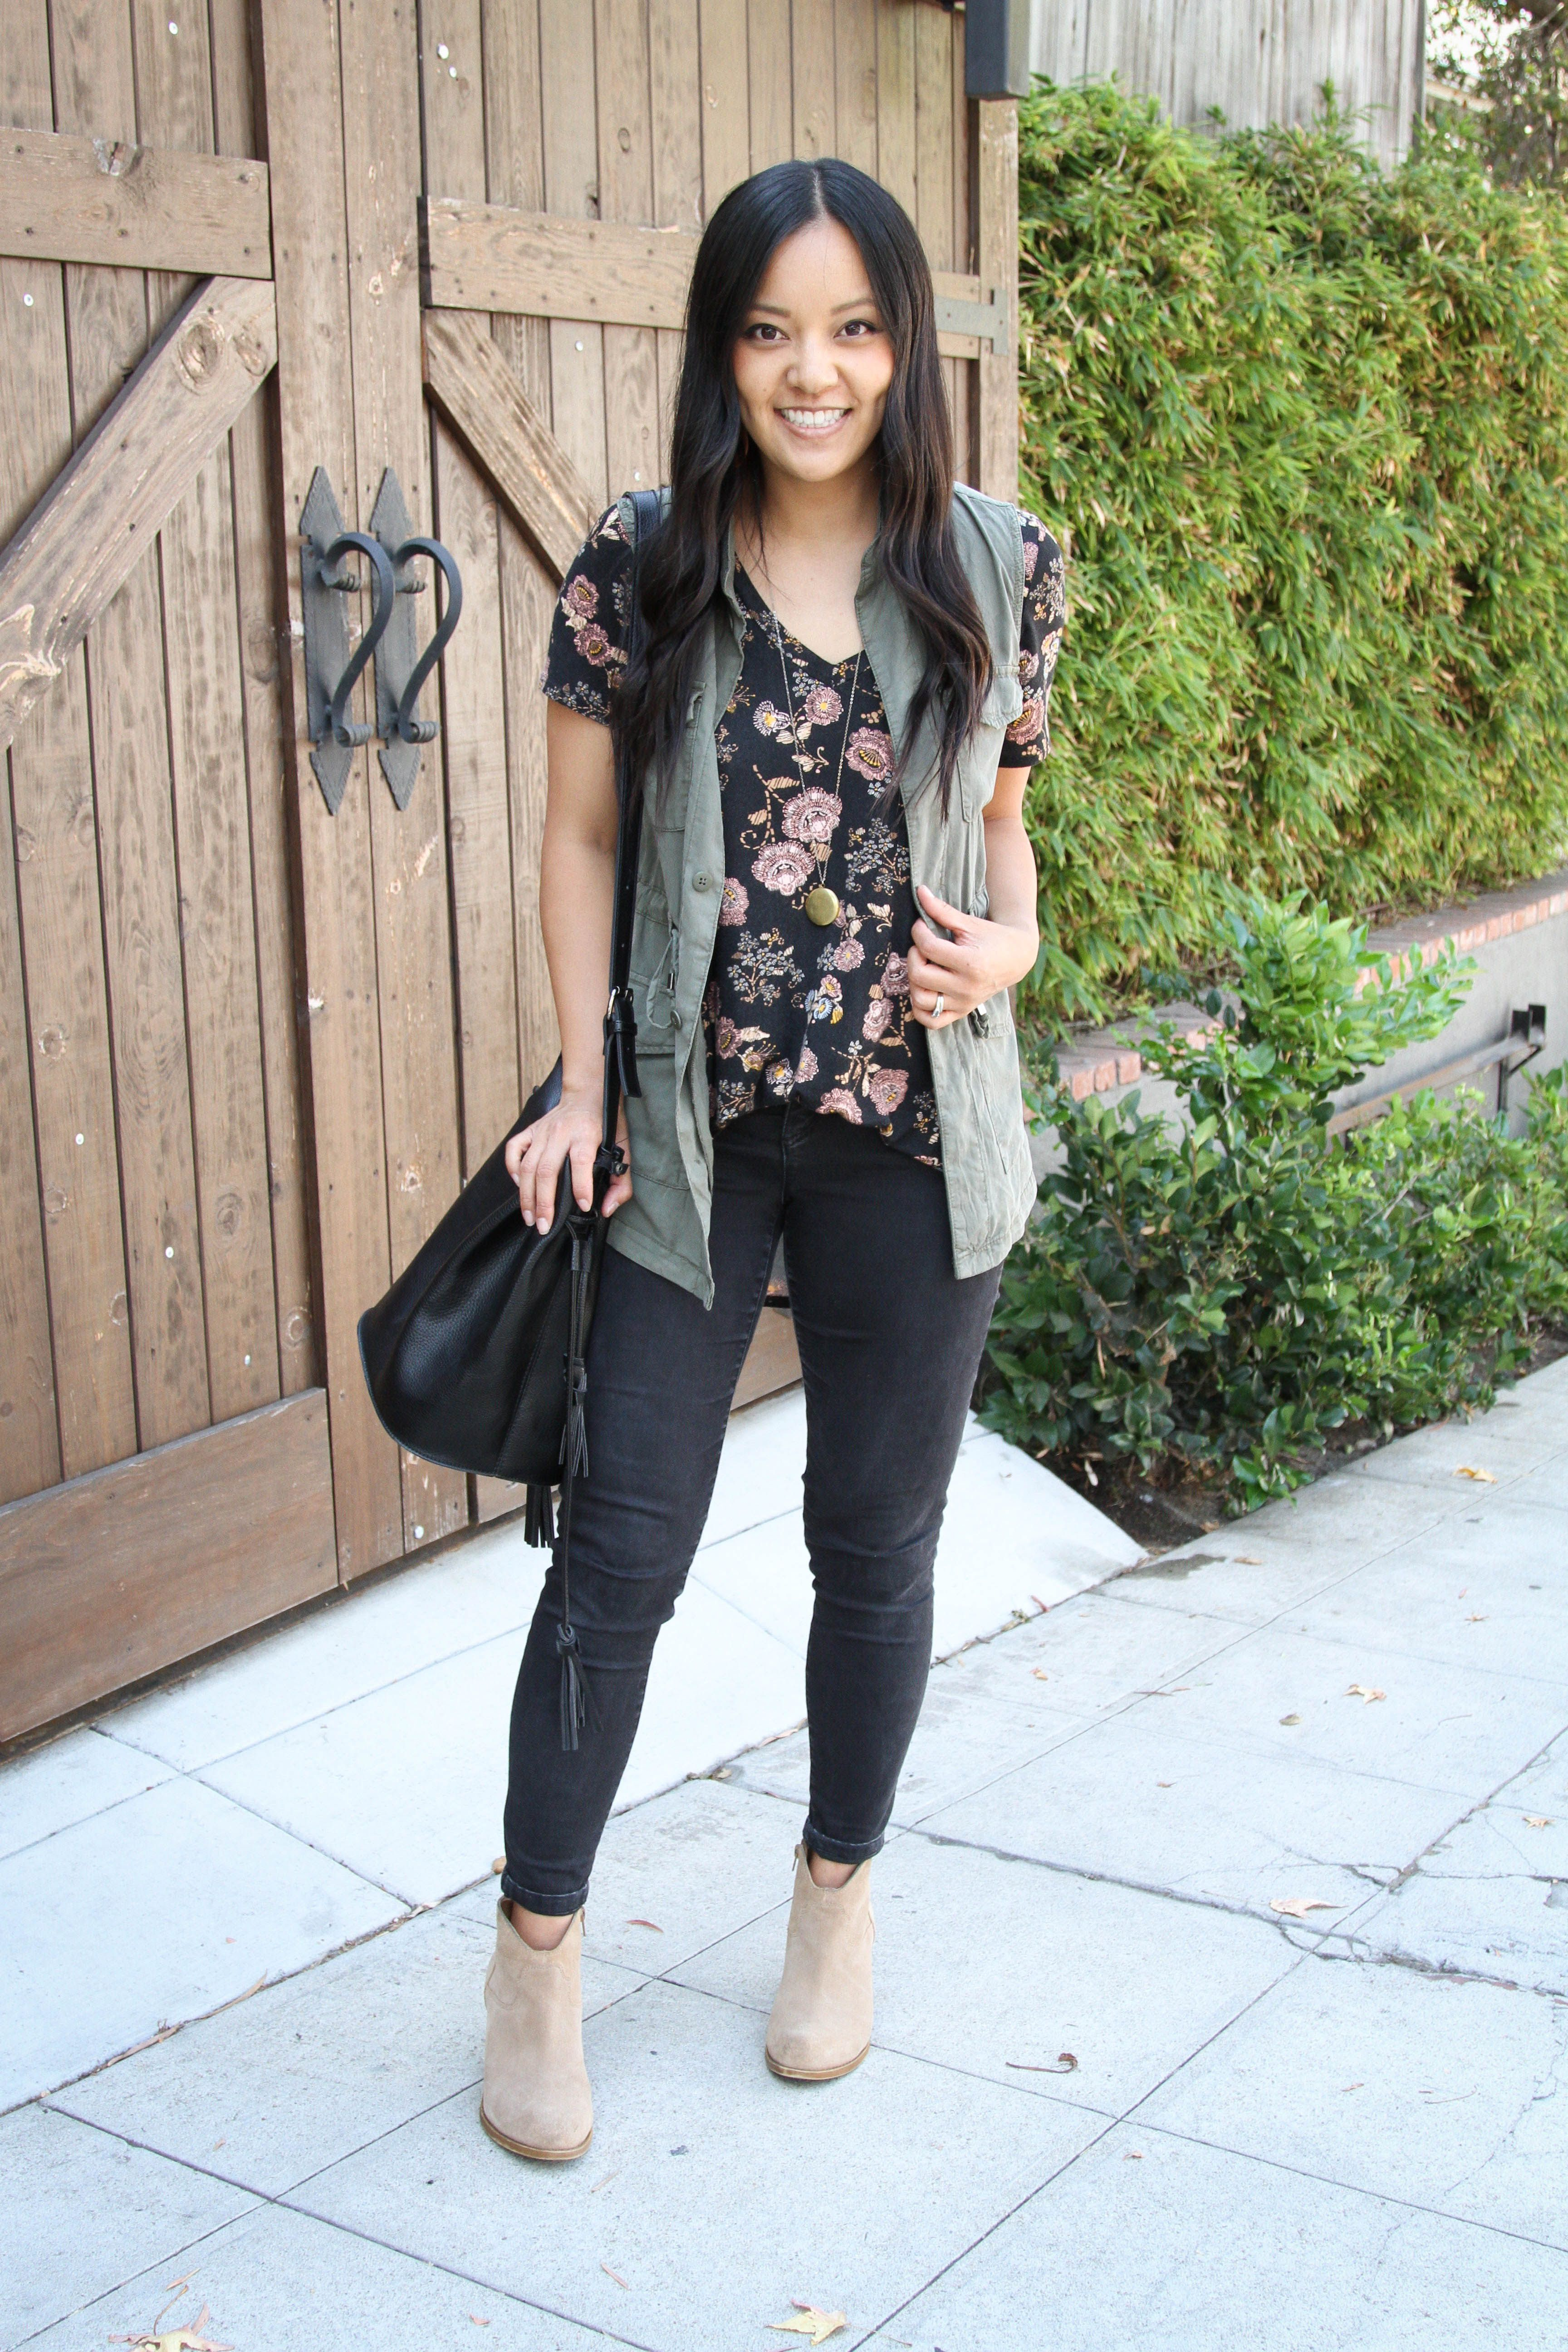 5 Ways To Wear A Utility Vest Tips For Finding One Floral Top Outfit Black Jeans Outfit Spring Everyday Casual Outfits [ 5184 x 3456 Pixel ]